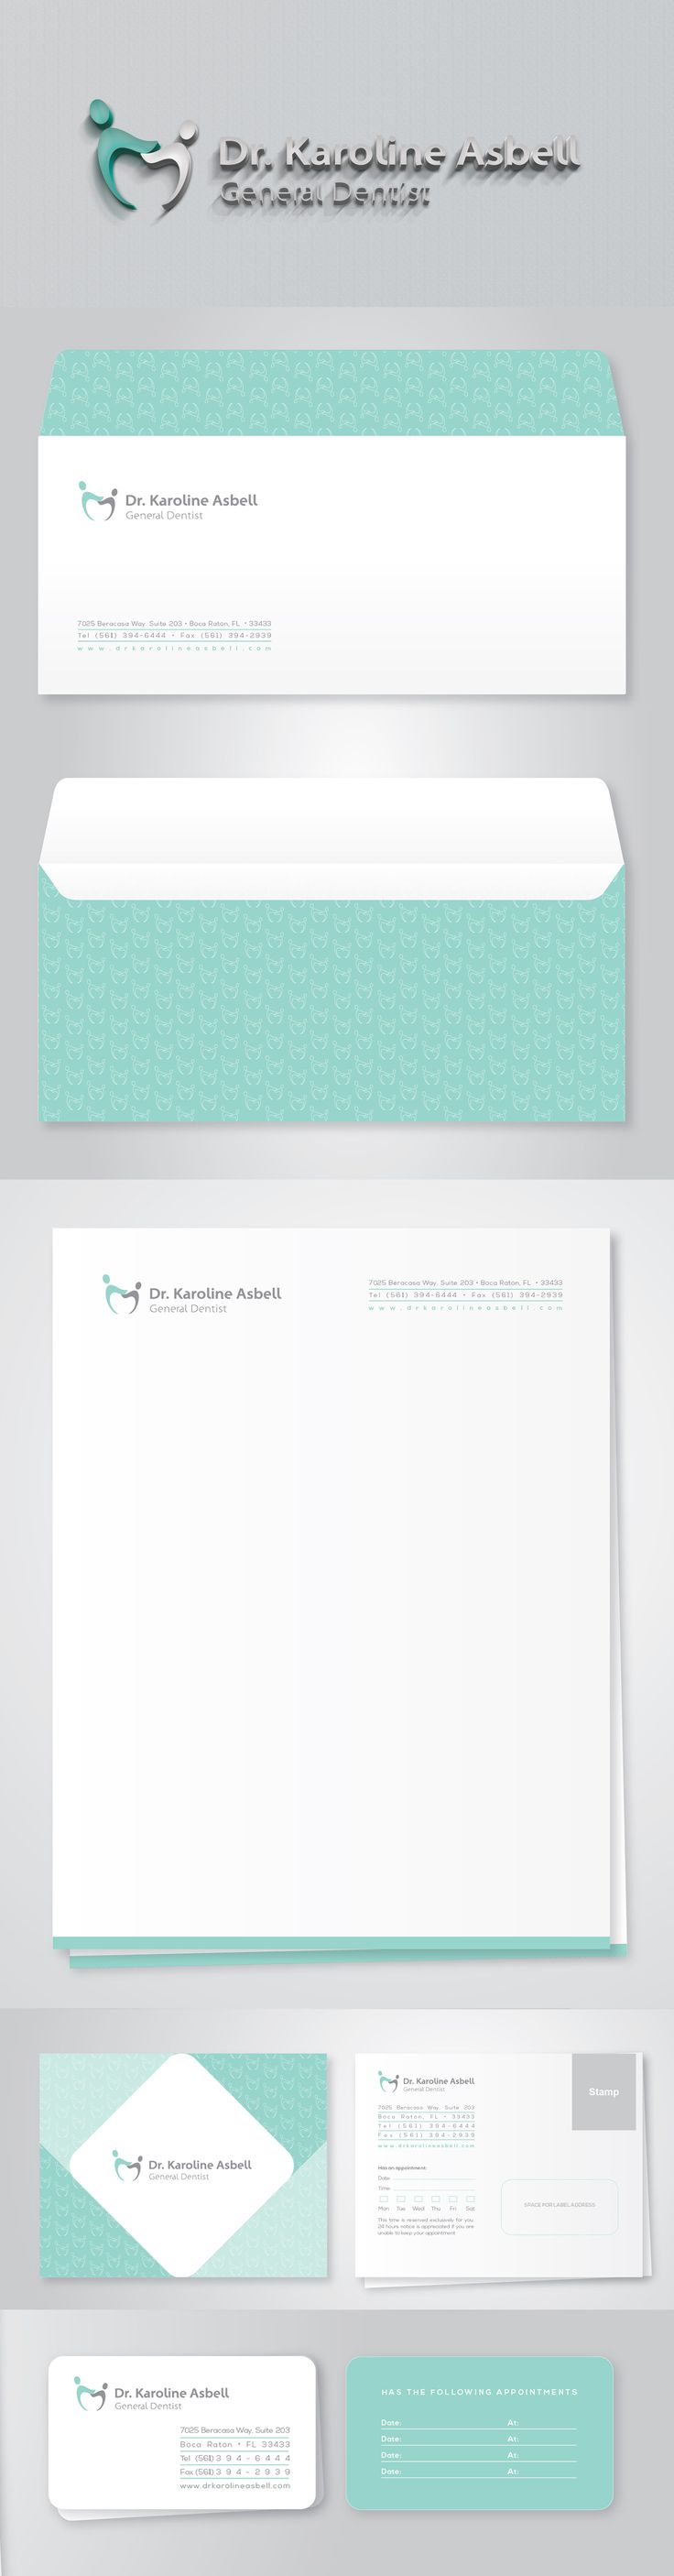 Logotipo e papelaria - Consultório Dentário Logotype and Stationery - Dental Office